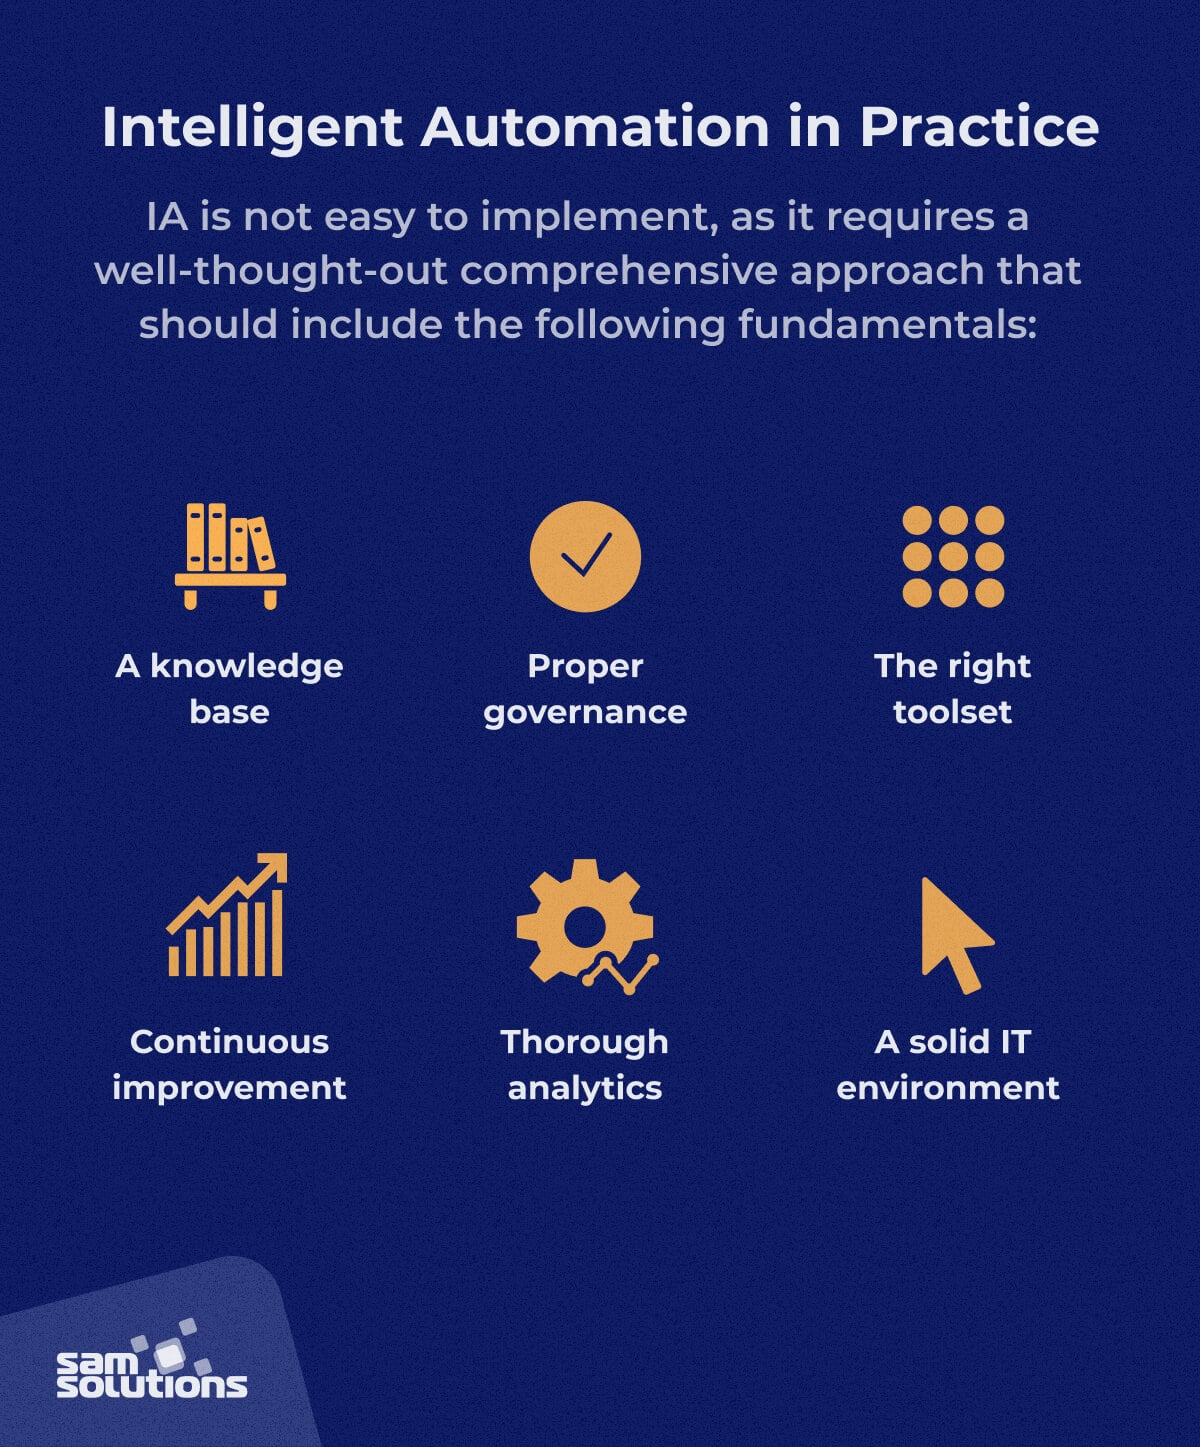 Intelligent-Automation-IA-in-Practice-image